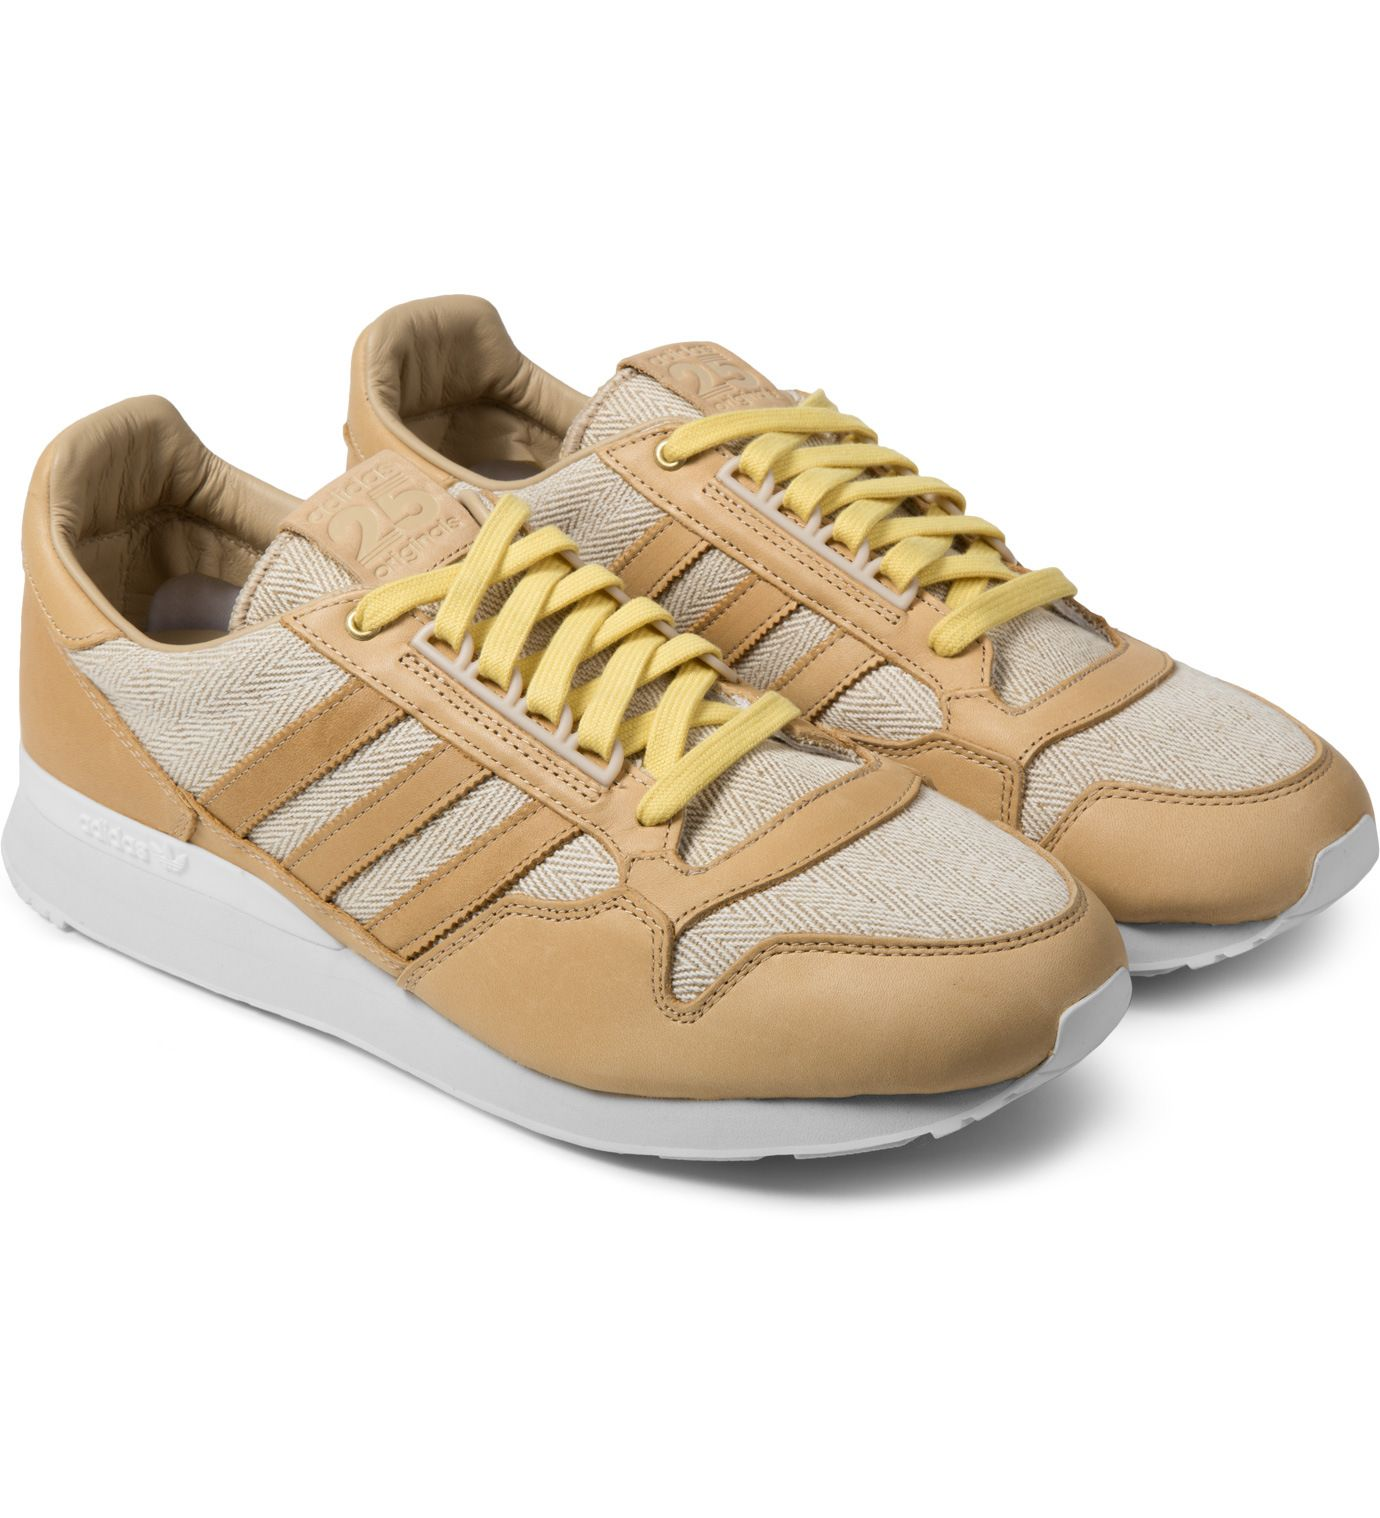 Adidas Originals - Pale Nude ZX 500 OG NIGO Shoes | HBX